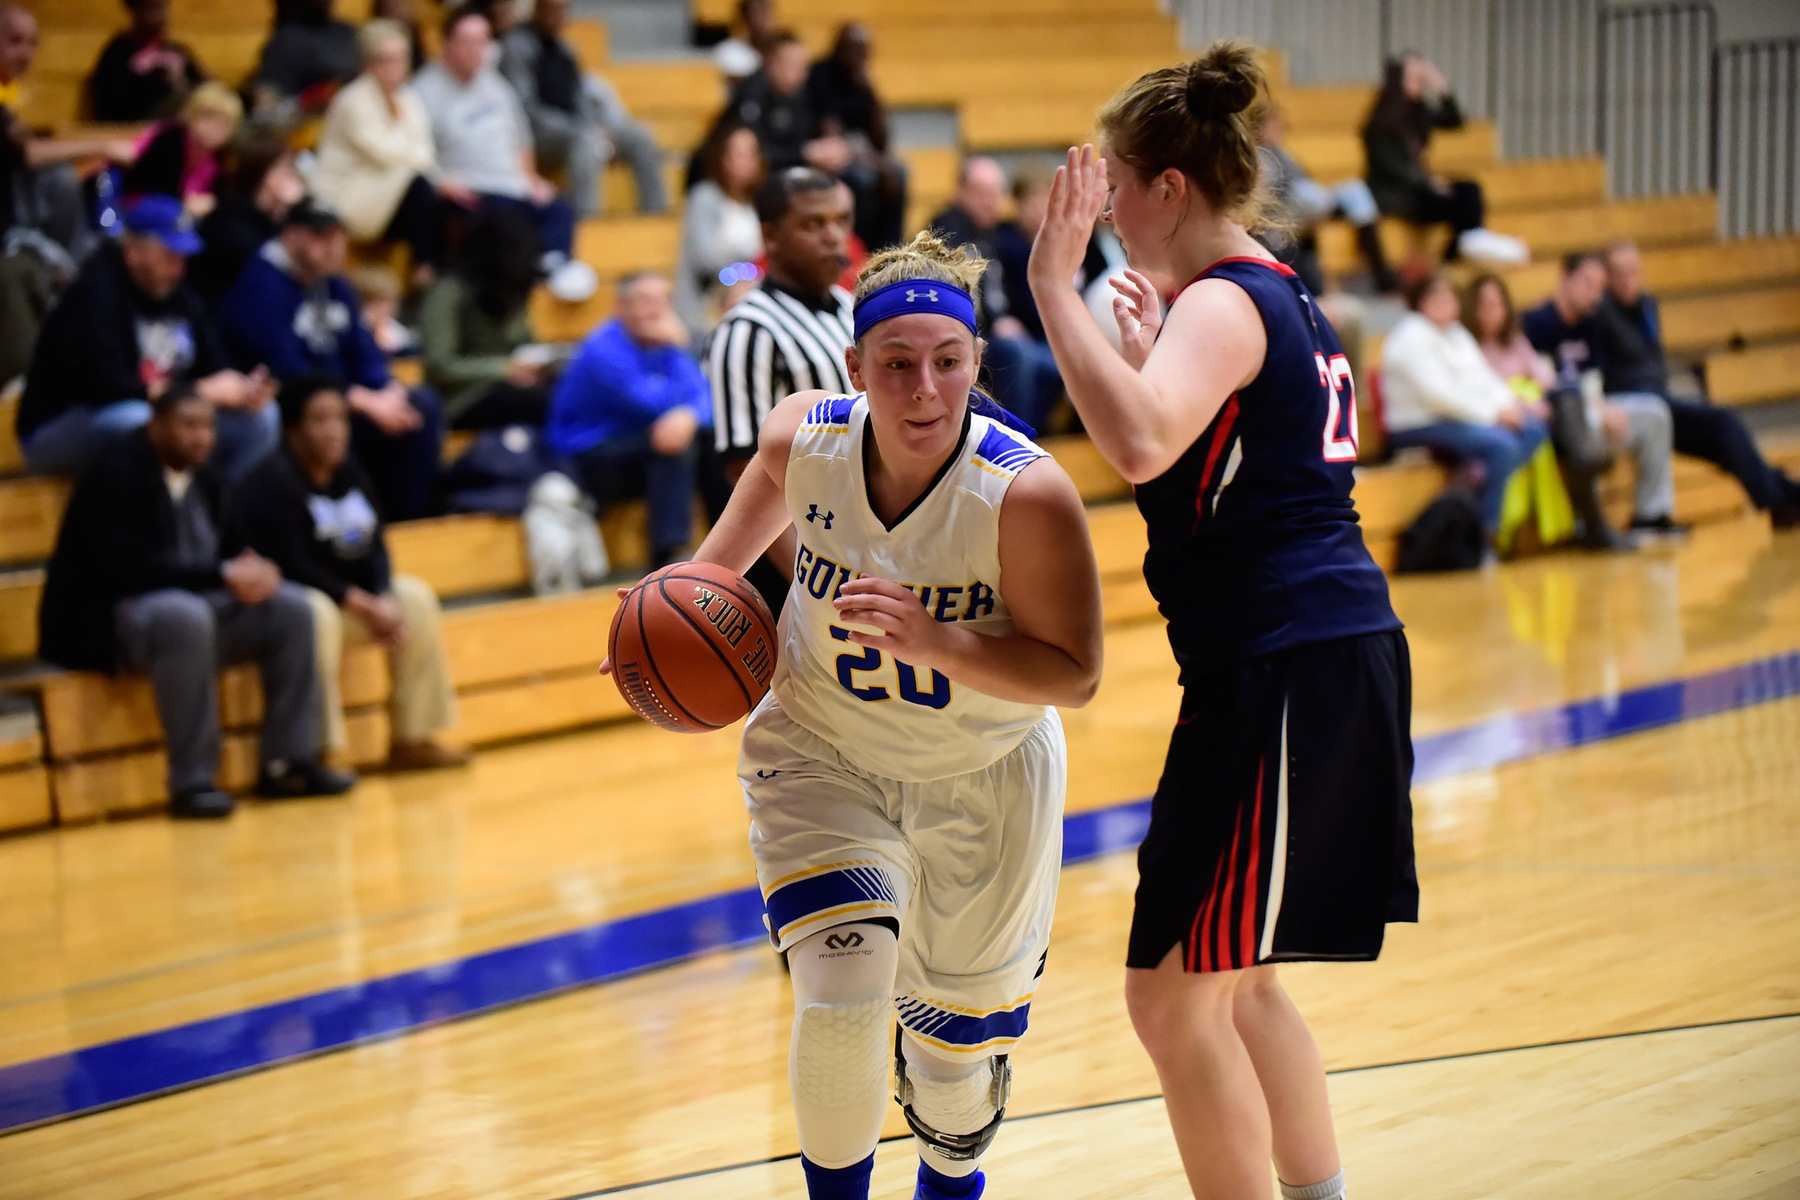 Women's Basketball Suffers a Tough Loss at Shenandoah